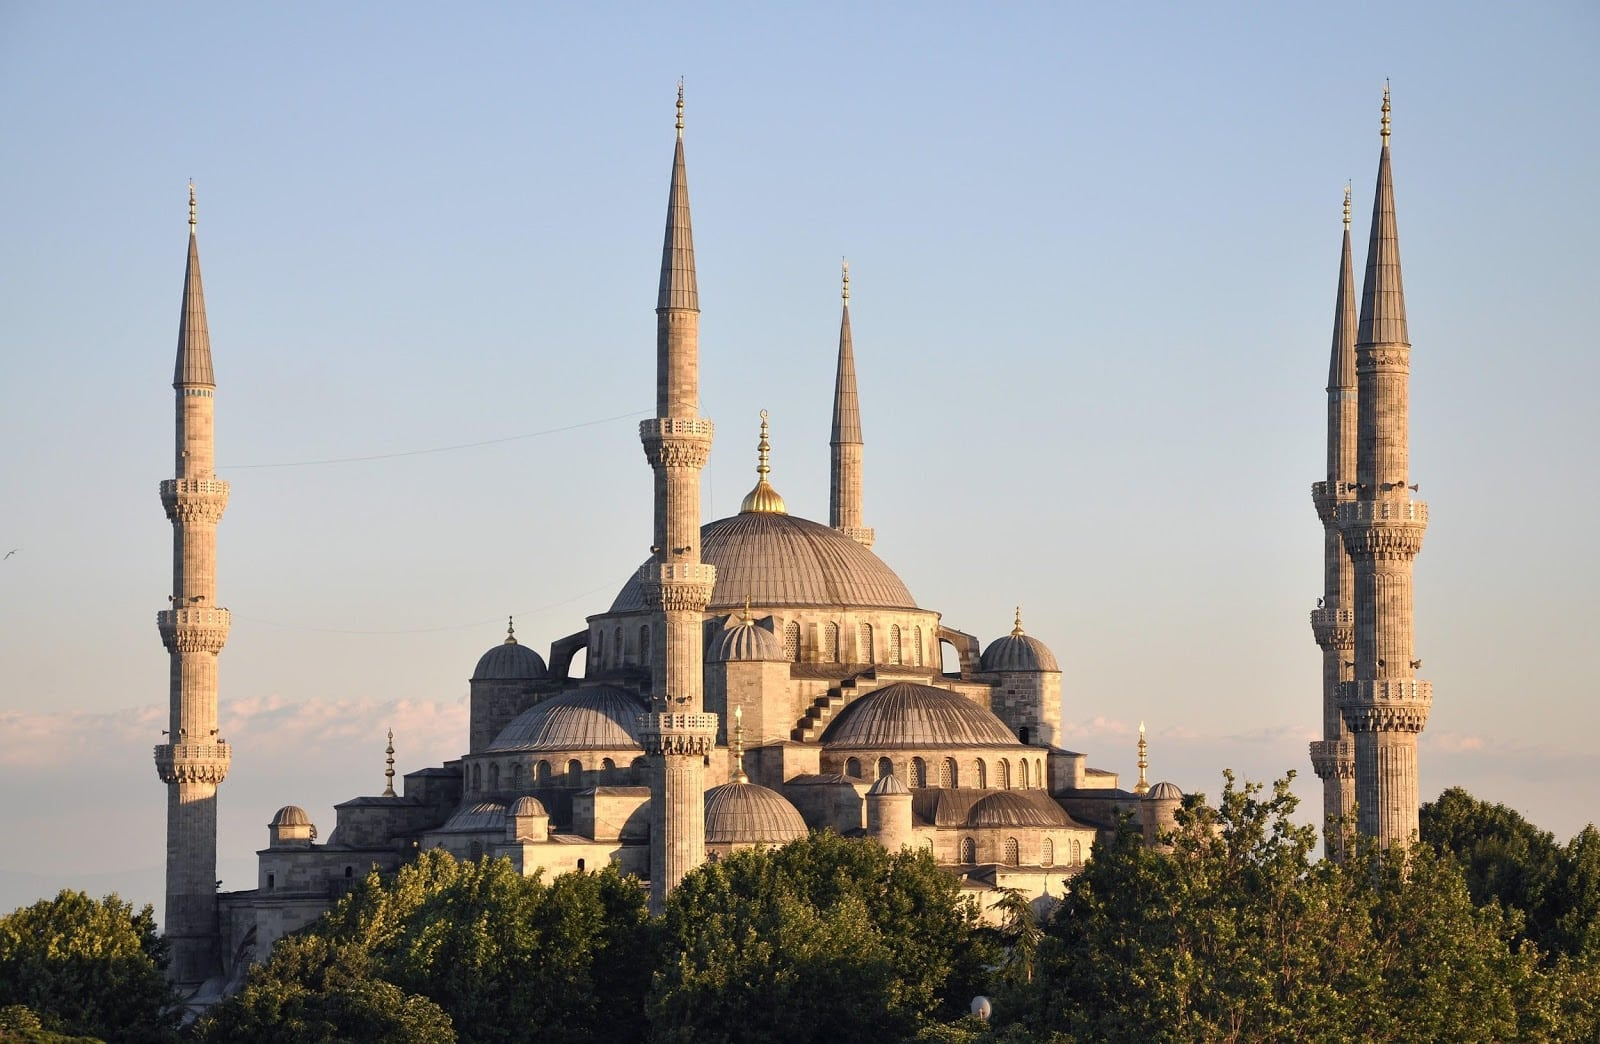 Exterior_of_Sultan_Ahmed_I_Mosque_in_Istanbul,_Turkey_002.jpg